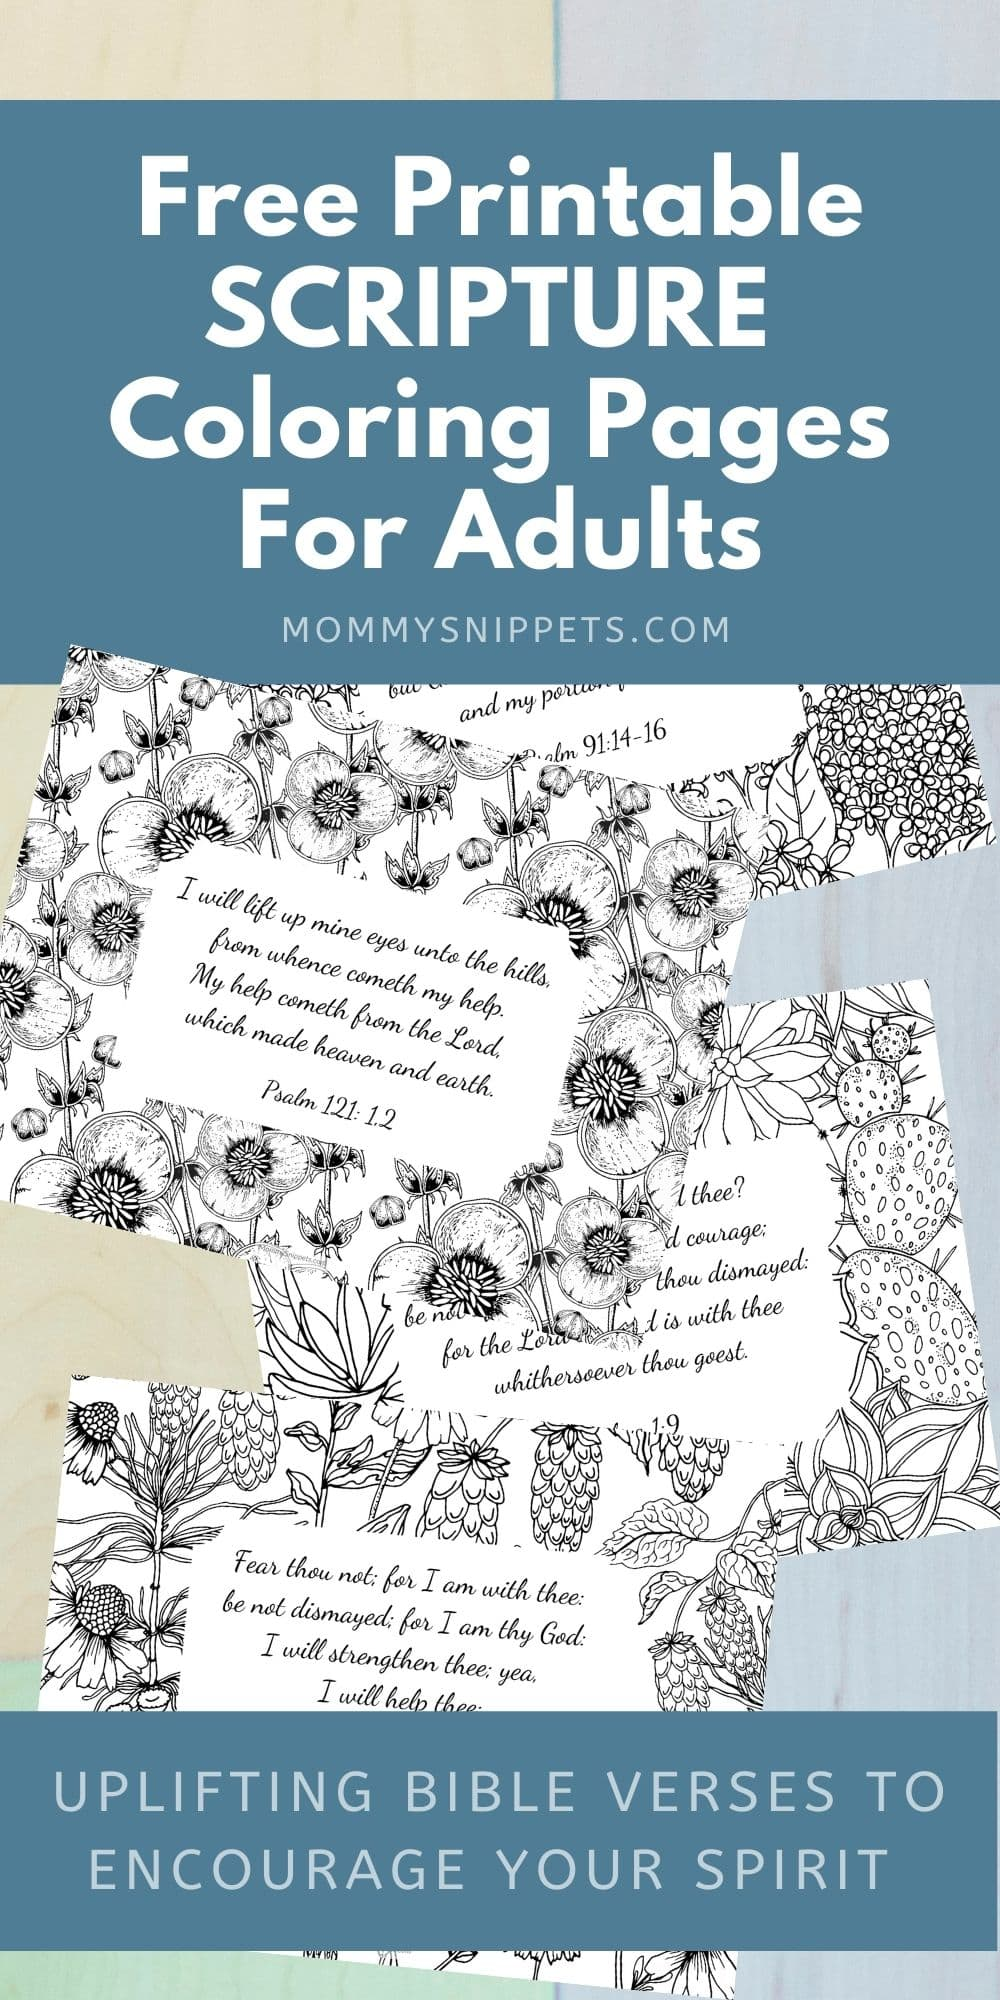 Uplifting Bible Verses to Encourage Your Spirit + Free Printable Scripture Coloring Sheets- MommySnippets.com